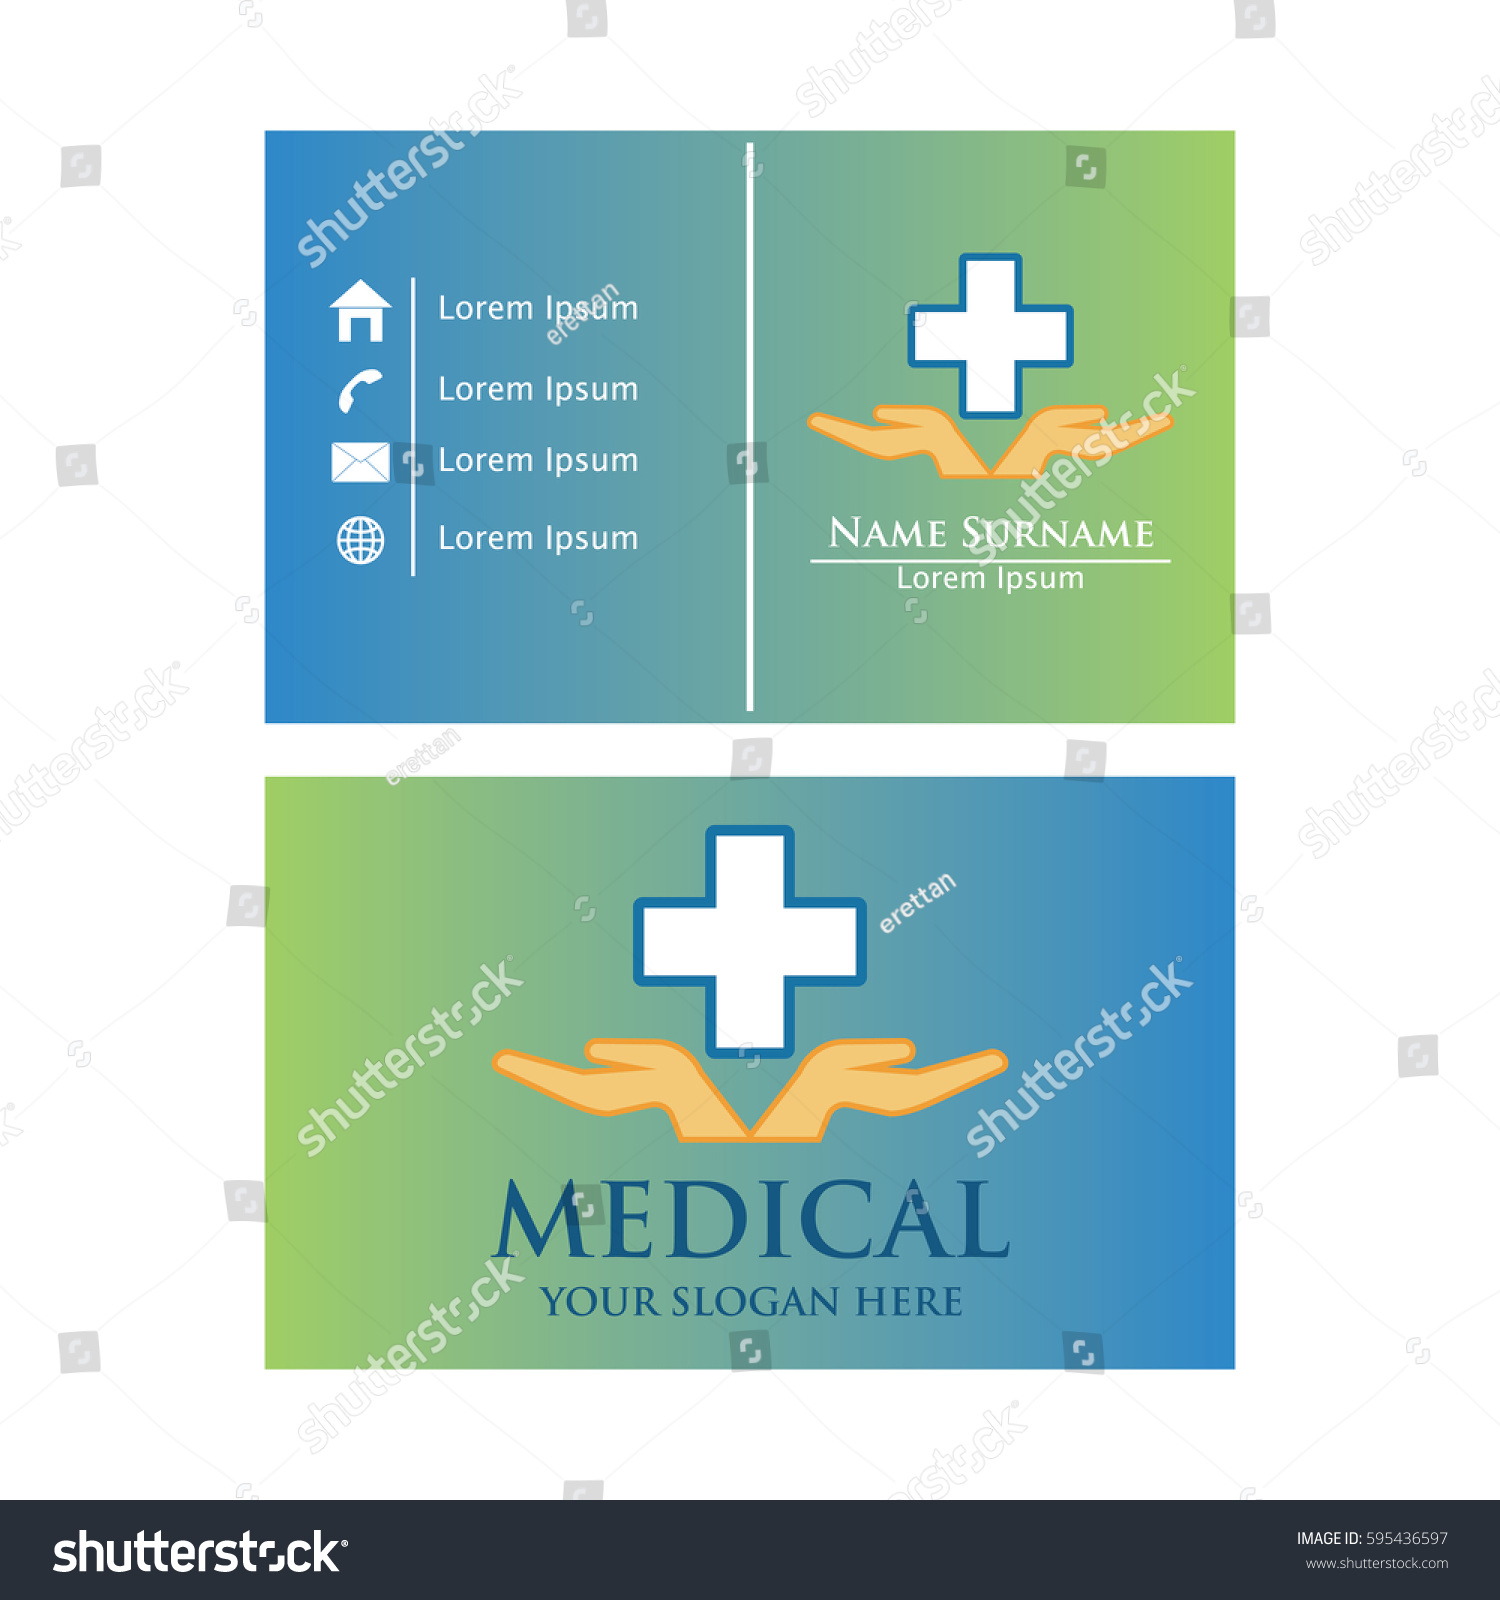 Medical Business Card Design Stock Vector HD (Royalty Free ...